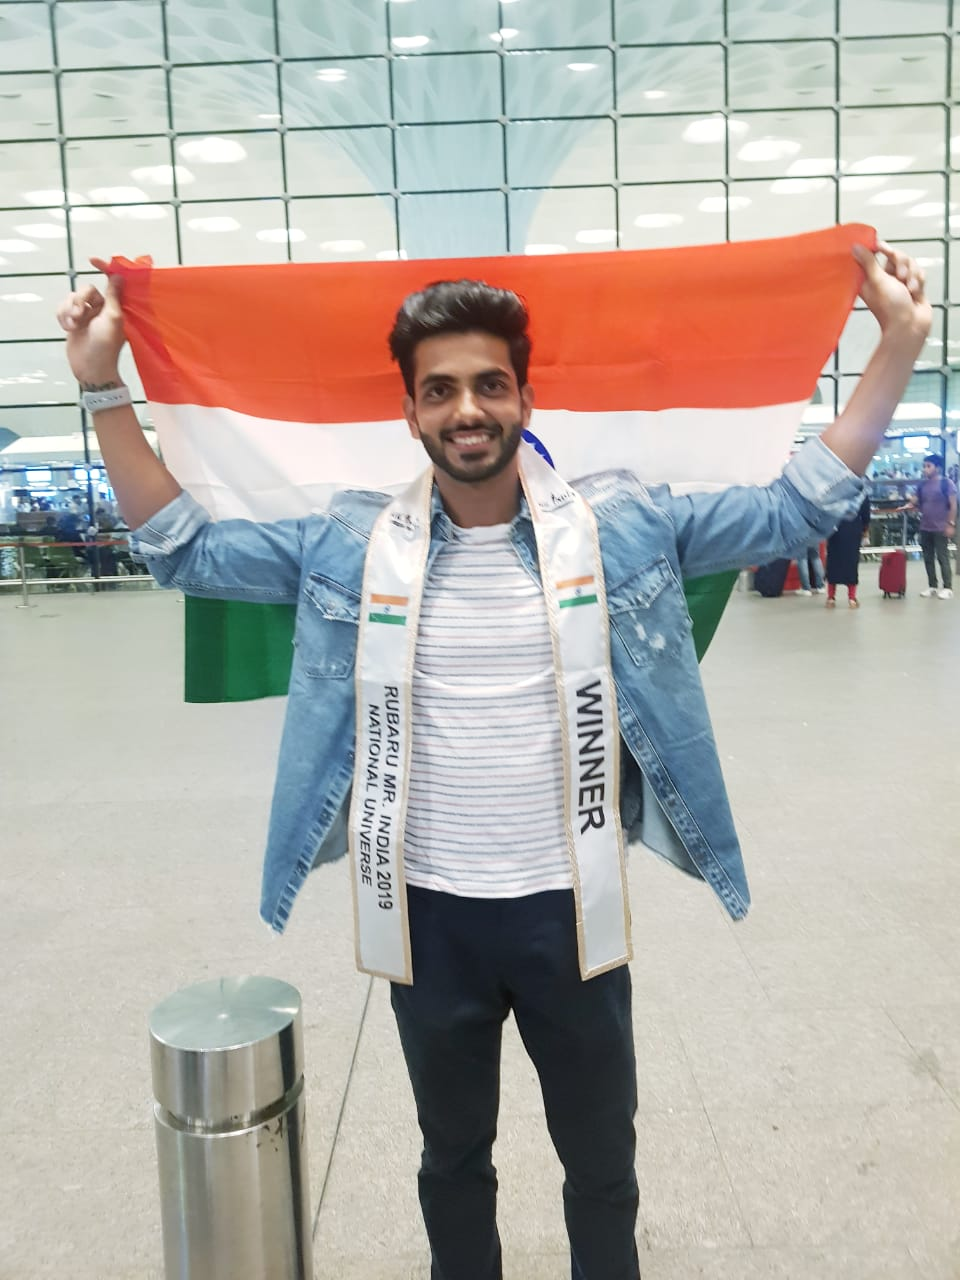 Rubaru Mr India National Universe 2019, Sahil Arora at Chhatrapati Shivaji Maharaj International Airport, Mumbai before leaving for Thailand.